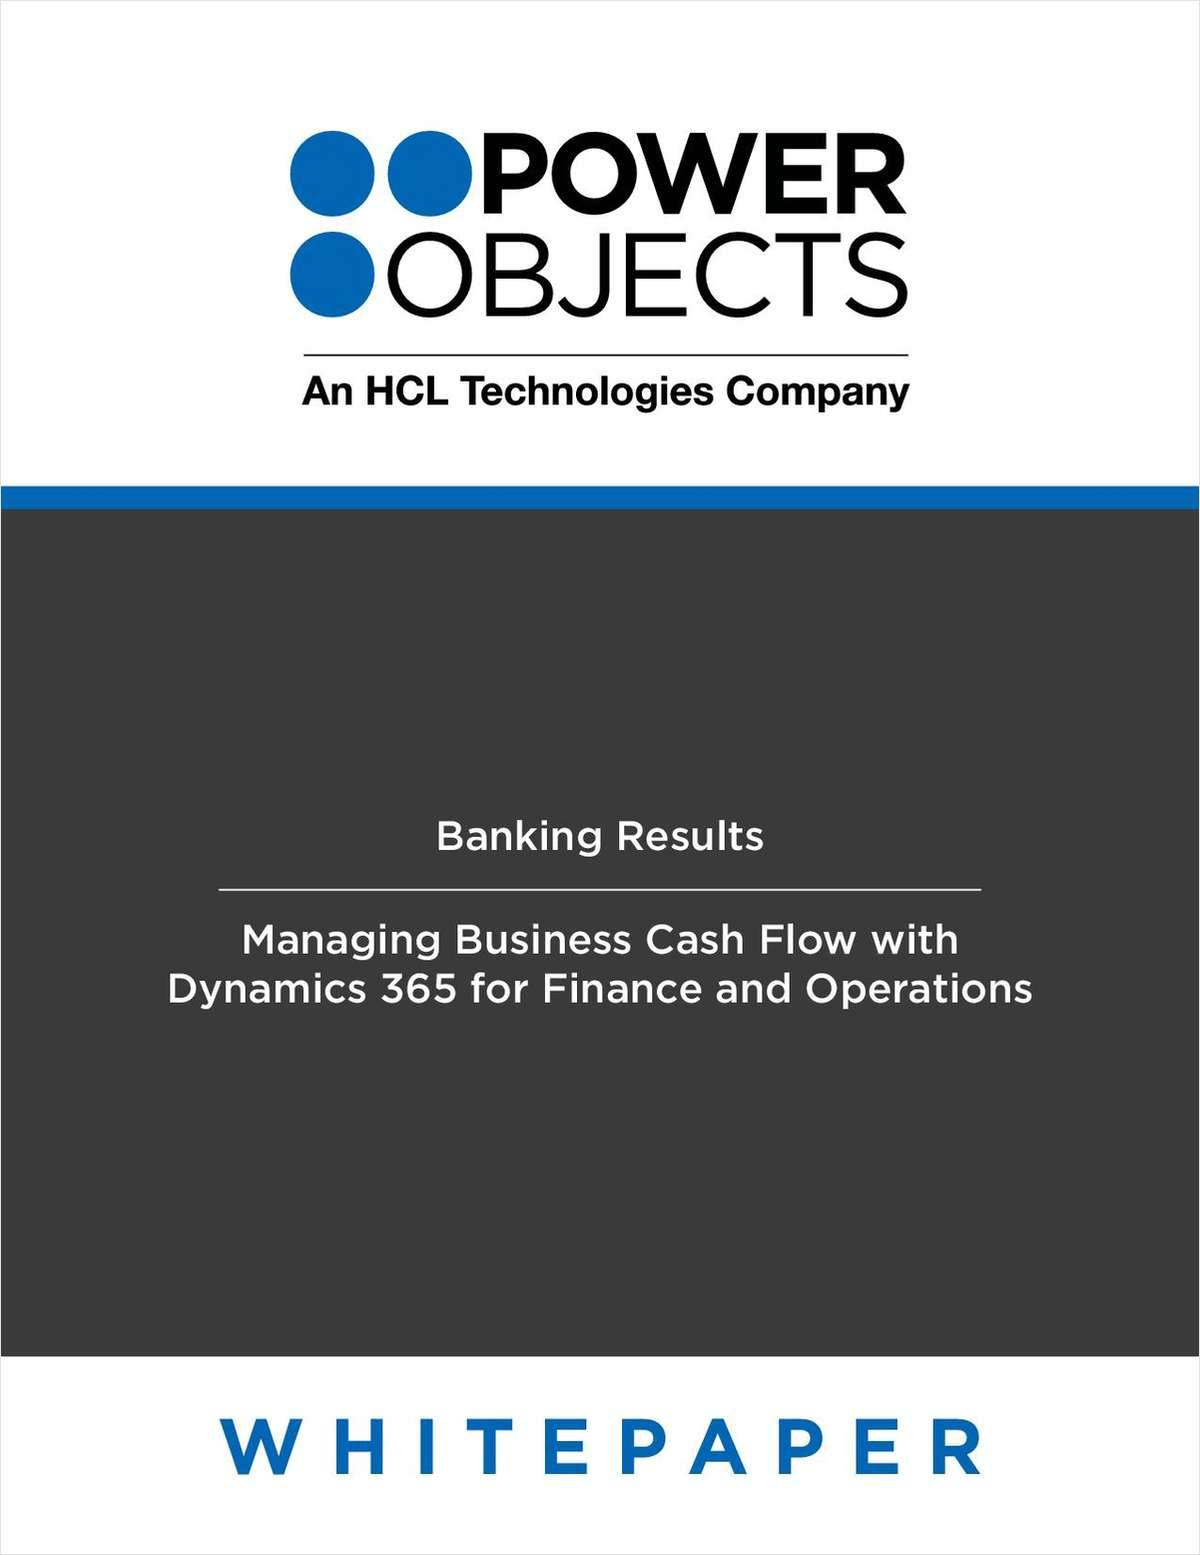 Managing Business Cash Flow with Dynamics 365 for Finance and Operations